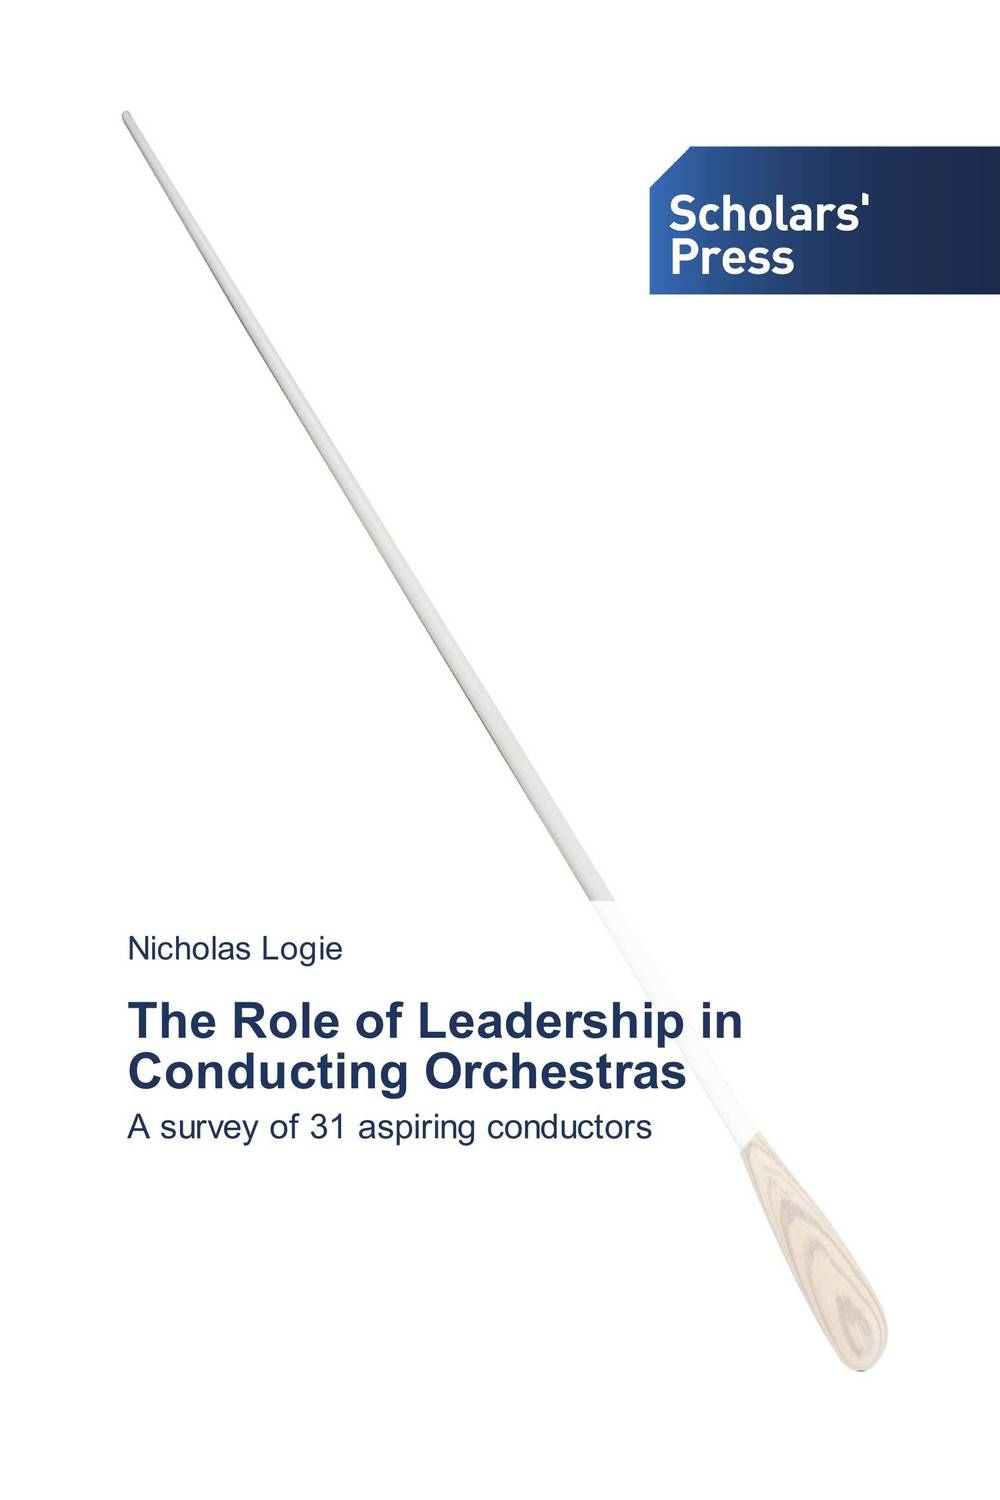 The Role of Leadership in Conducting Orchestras role of school leadership in promoting moral integrity among students